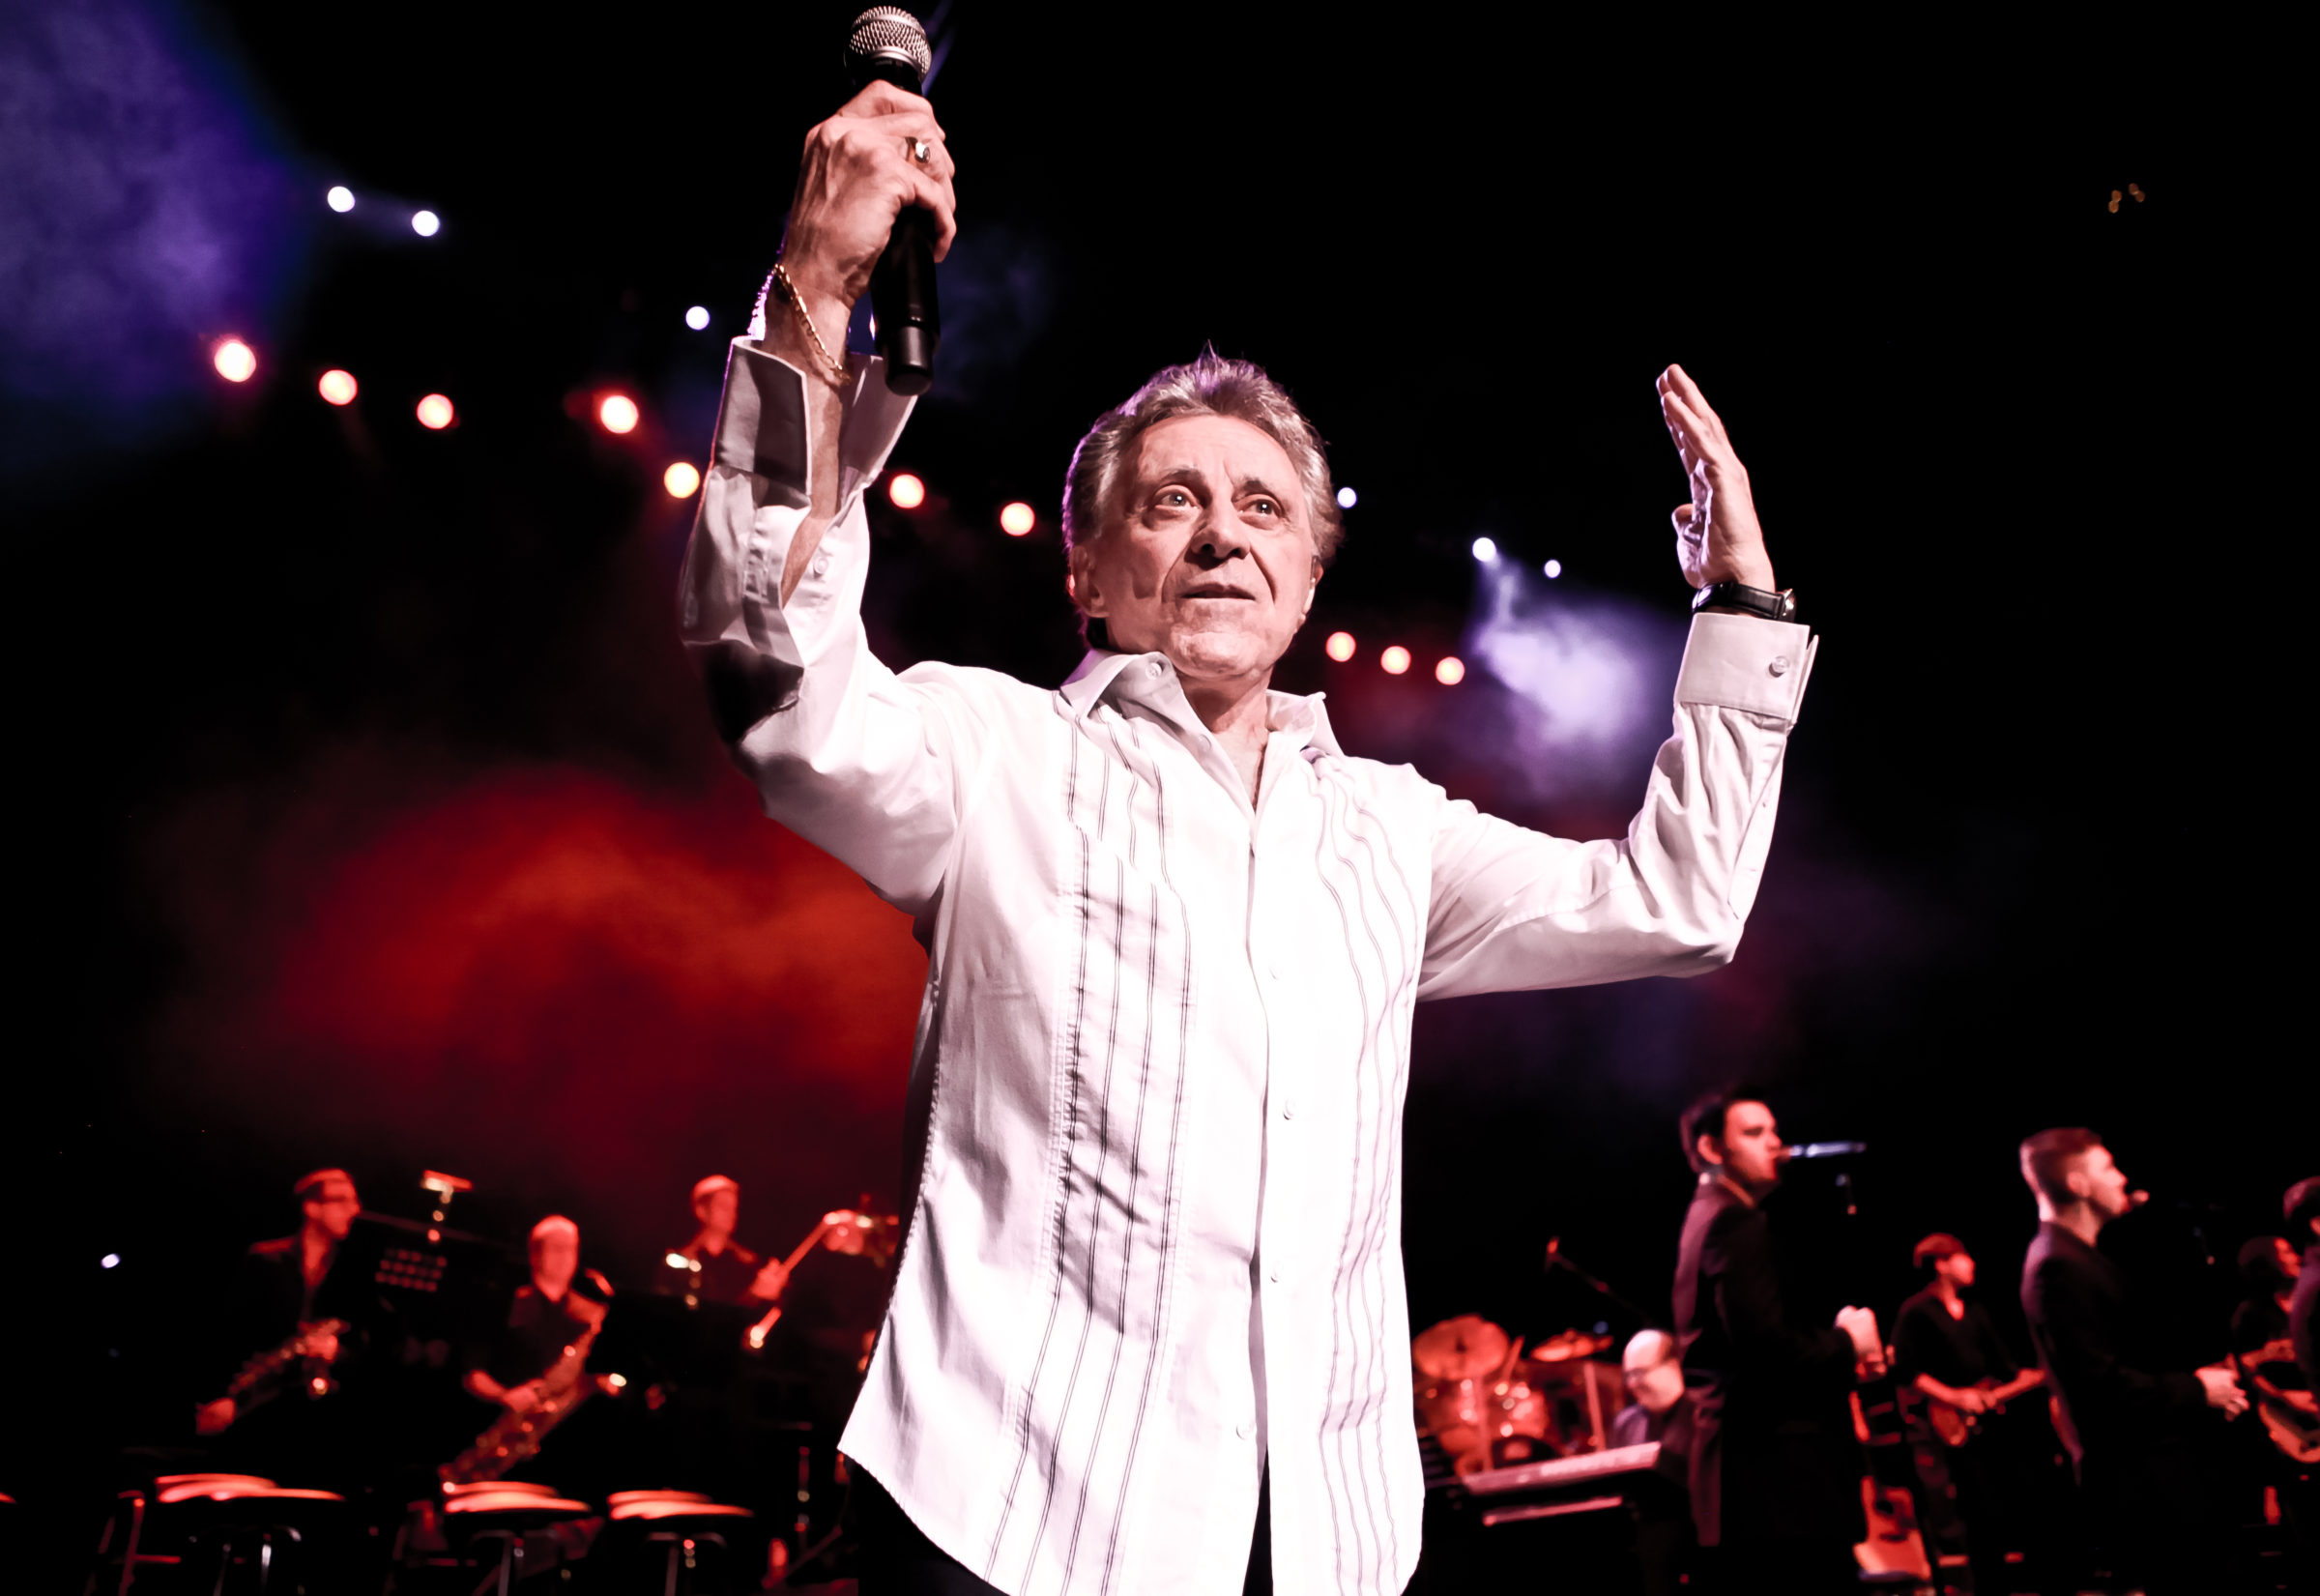 Frankie Valli Performing At Altria Theater Saturday Is The Mood We All Need This Summer